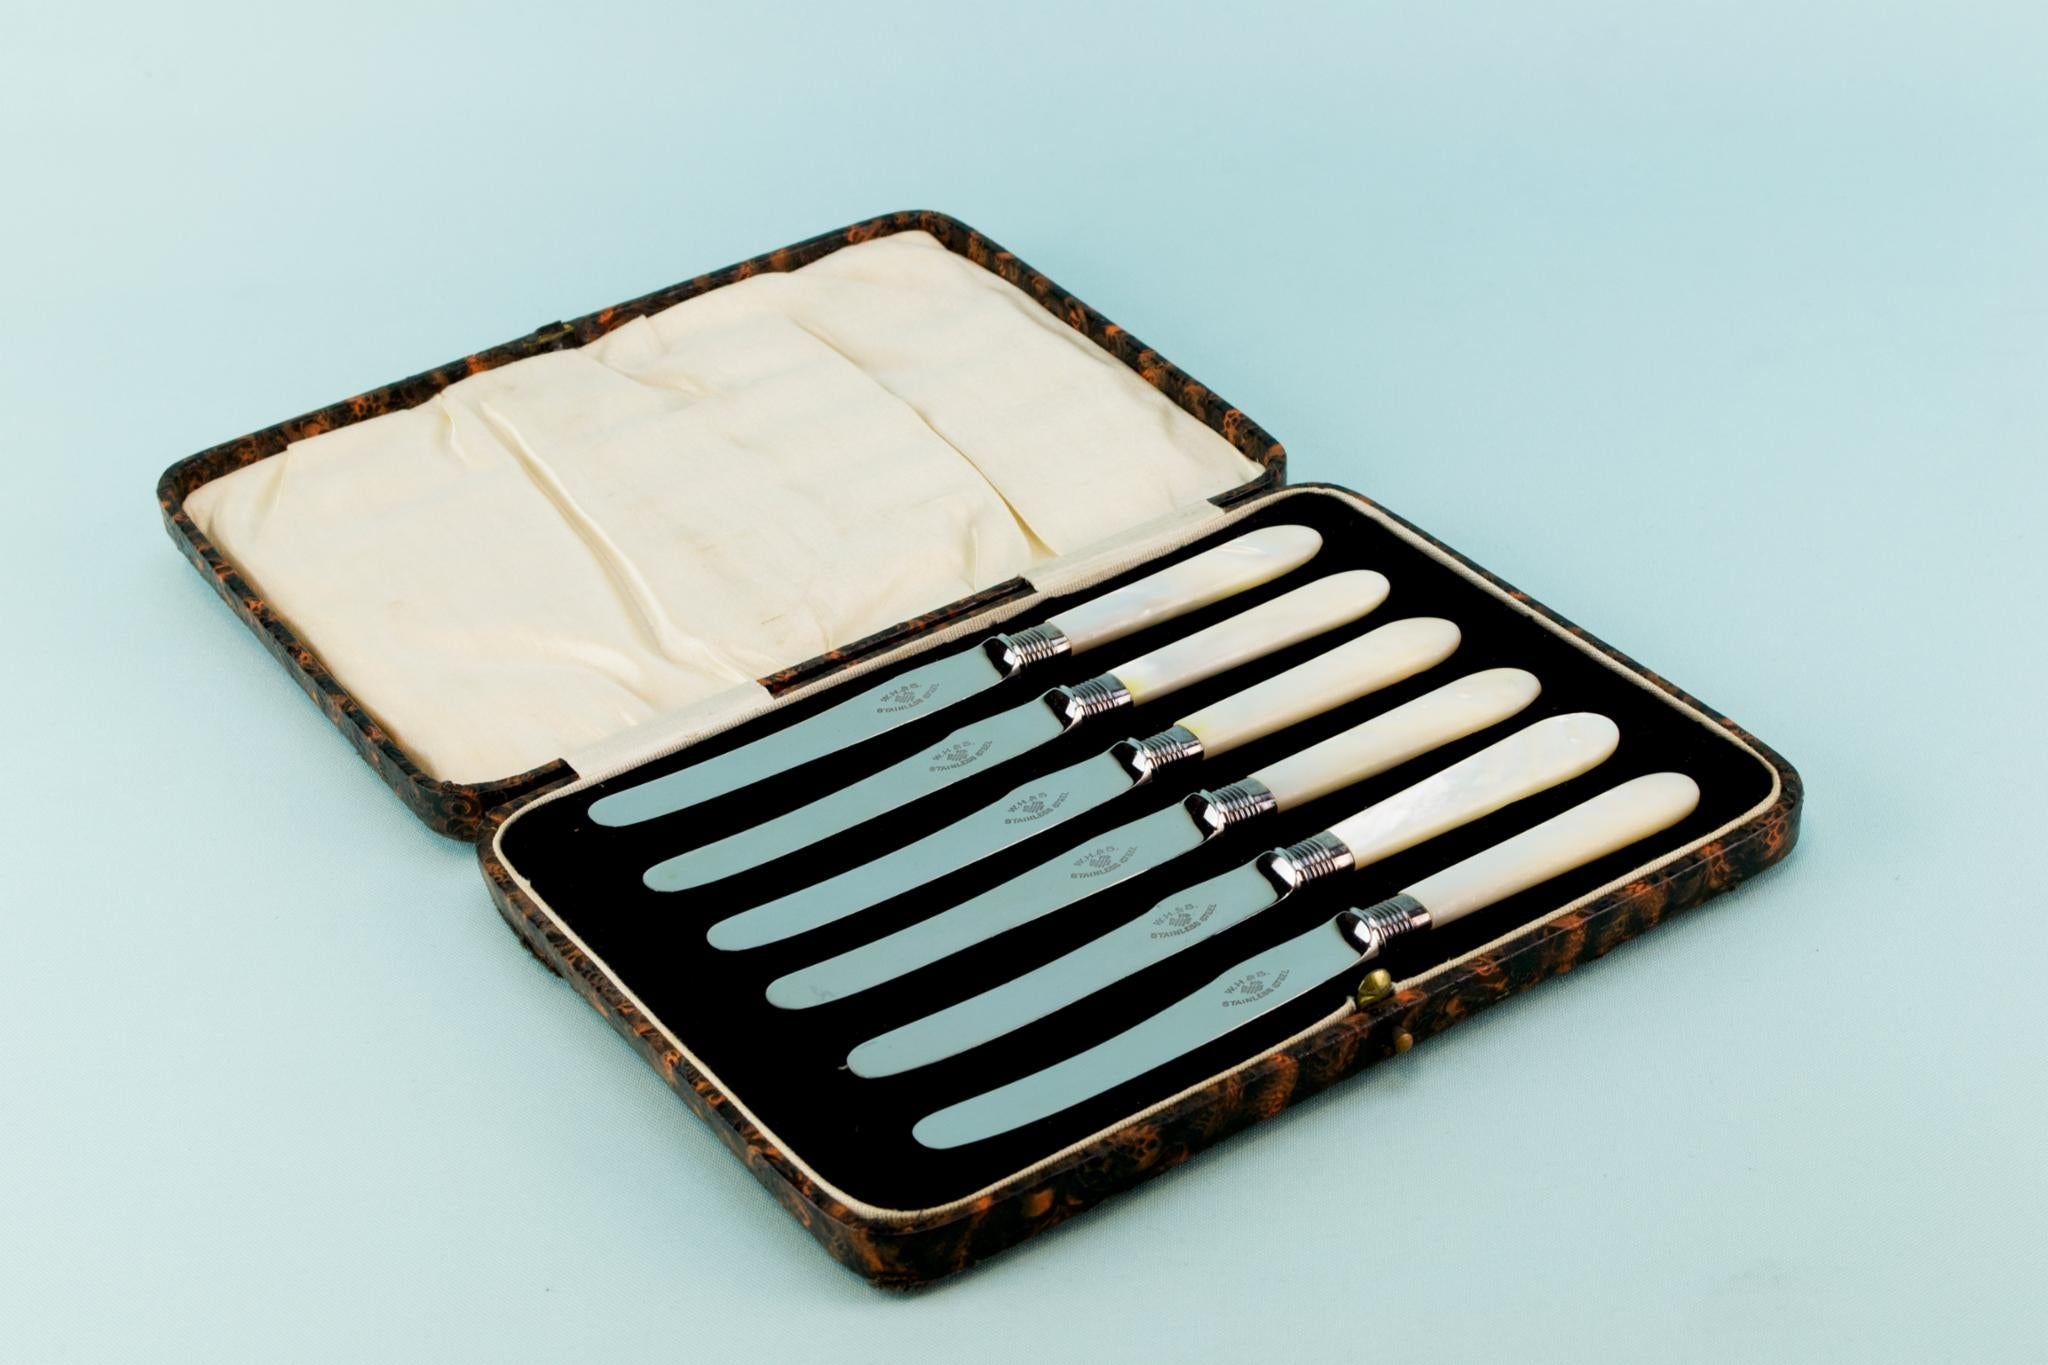 6 mother of pearl butter knives, English 1930s